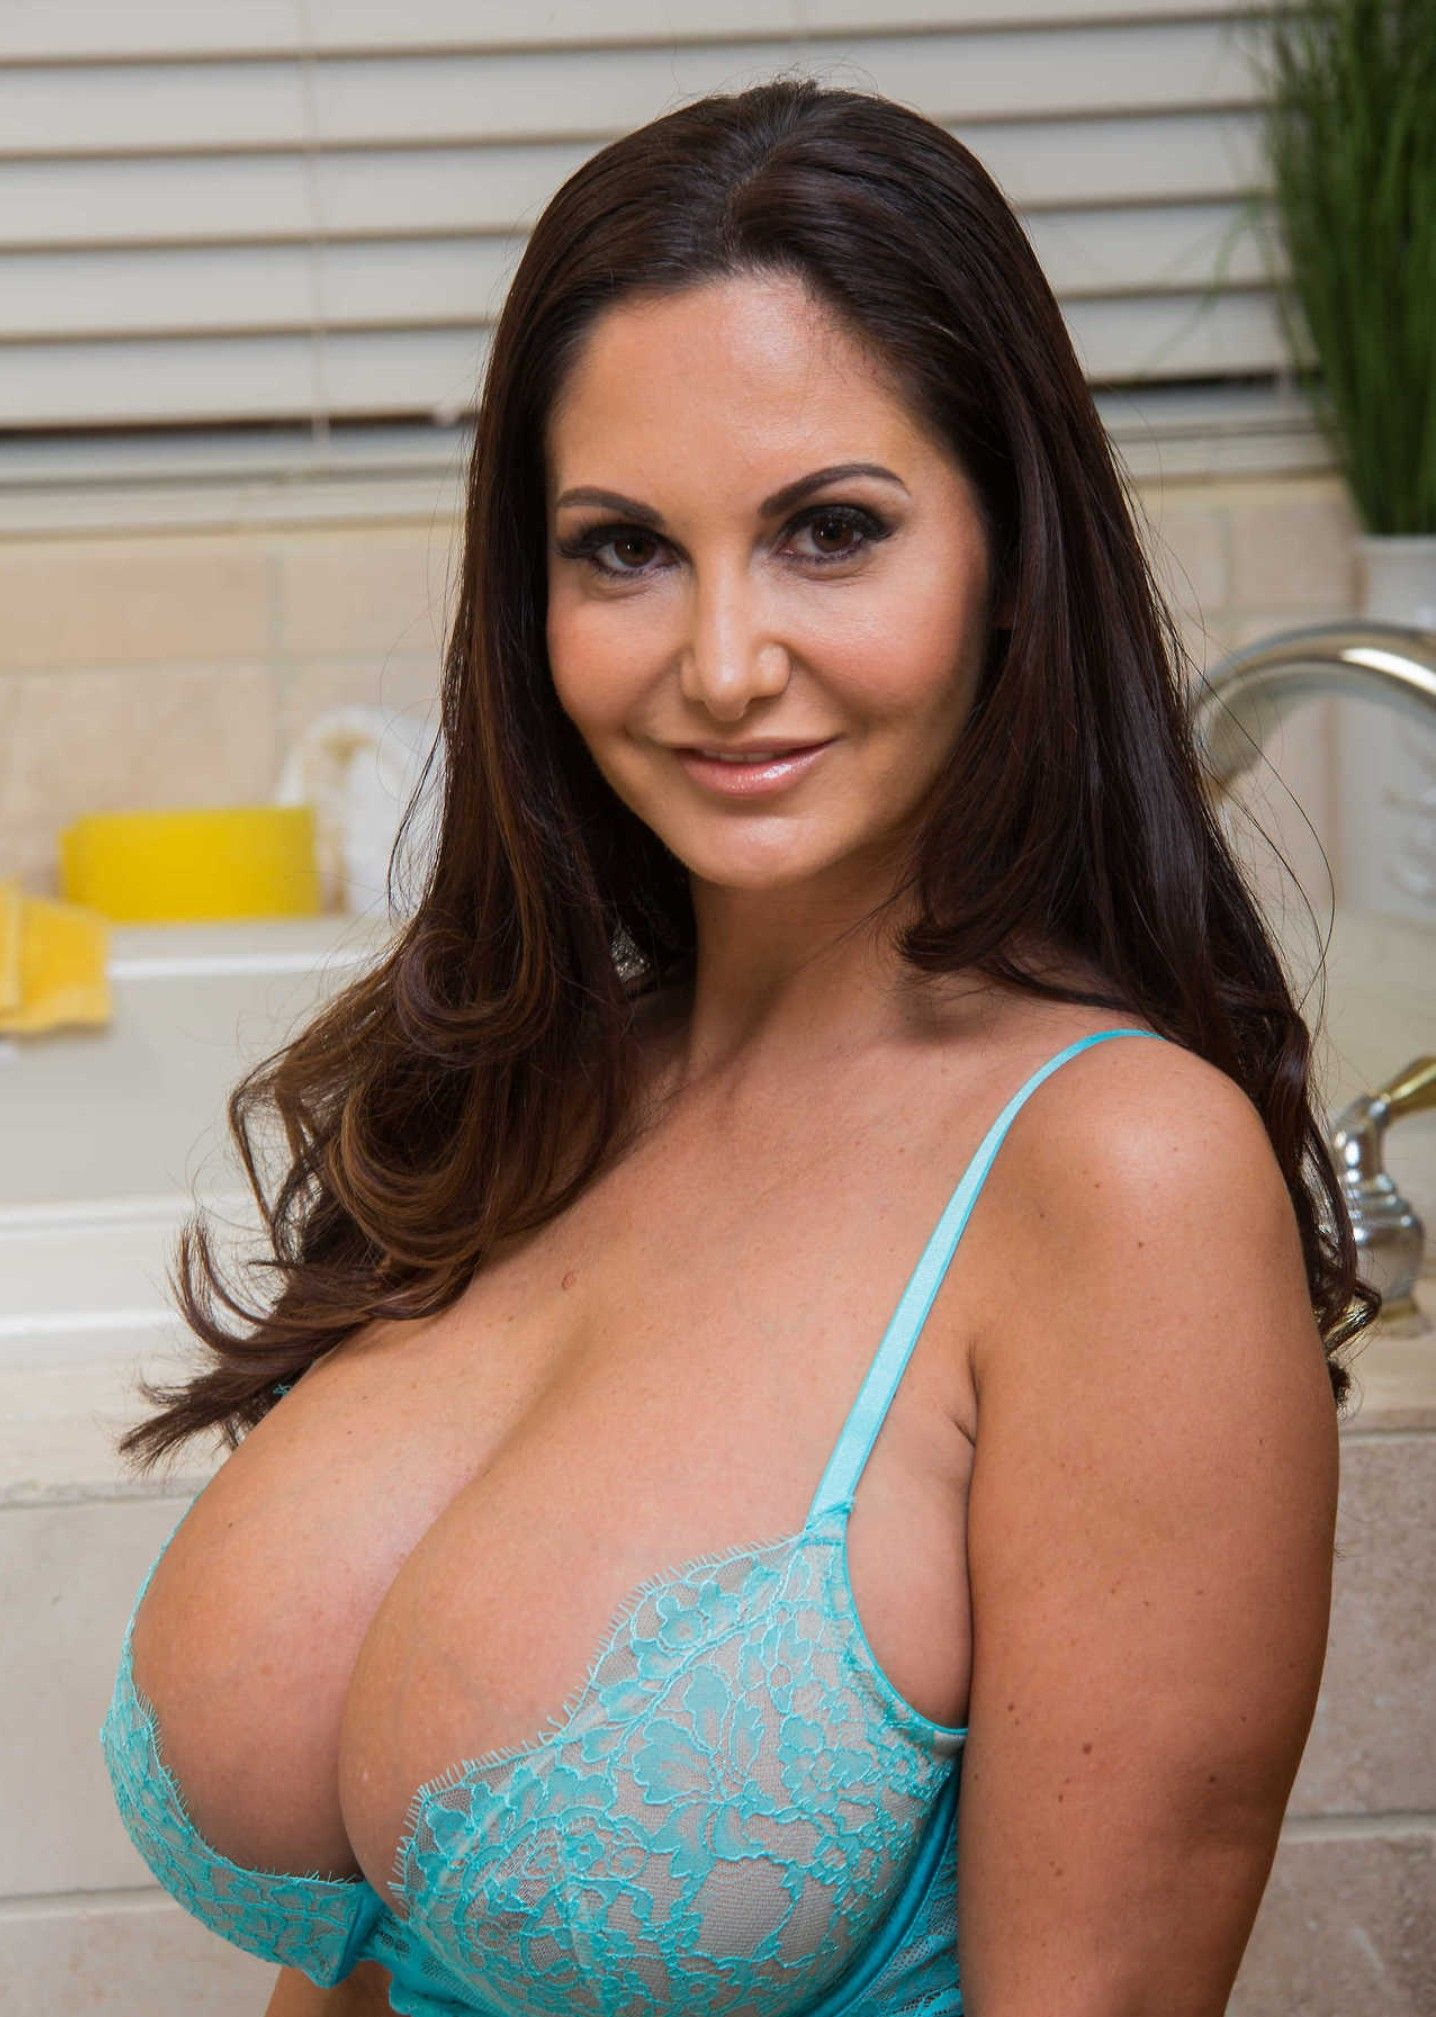 pingeorge whannel on ava addams | pinterest | ava, boobs and big